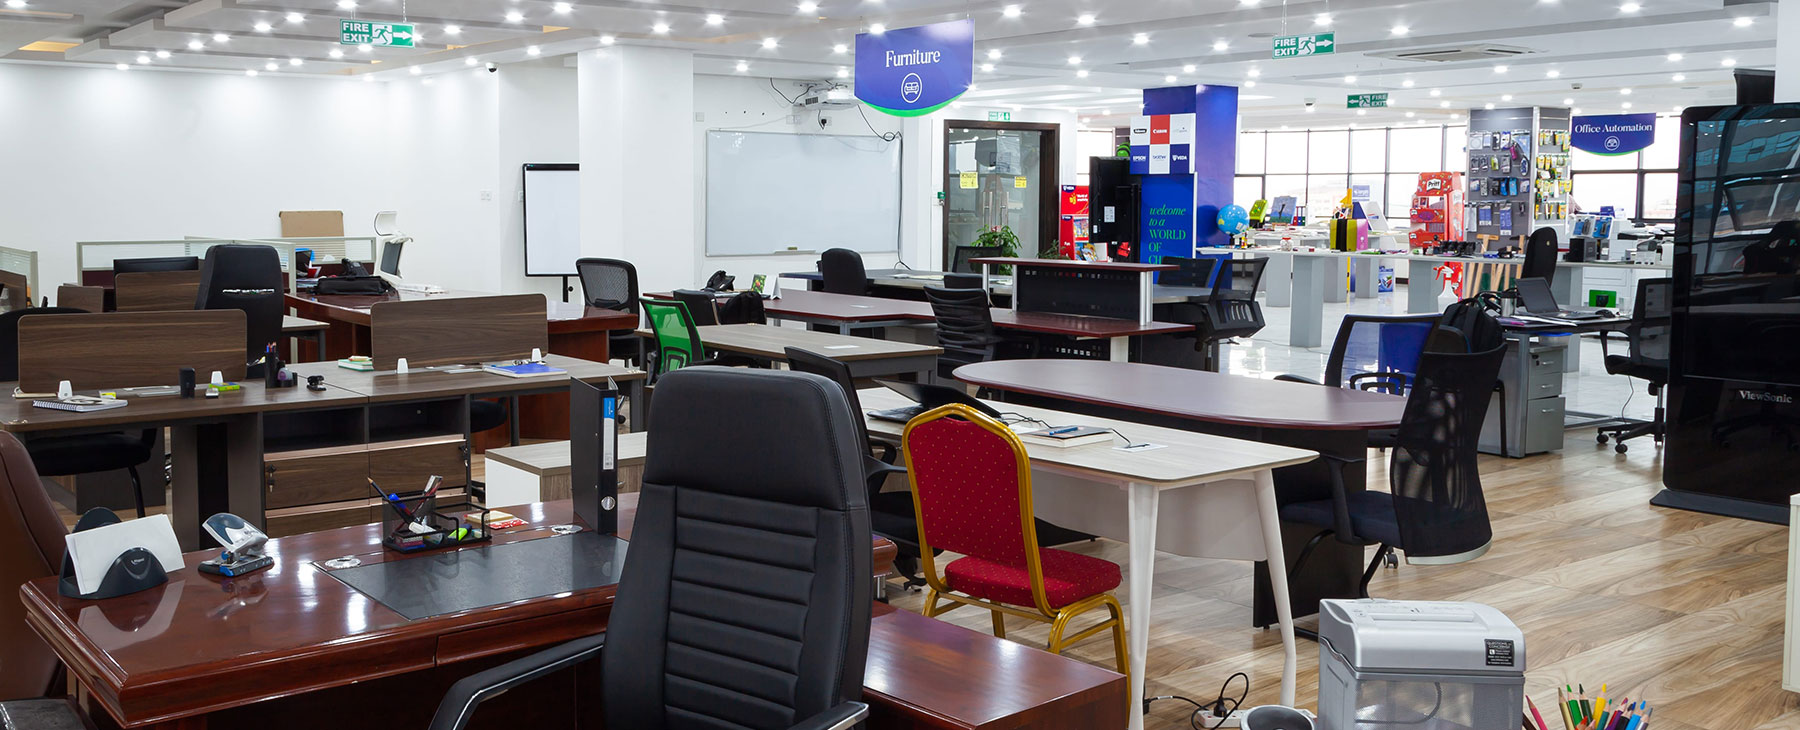 Sai Office -  About Us